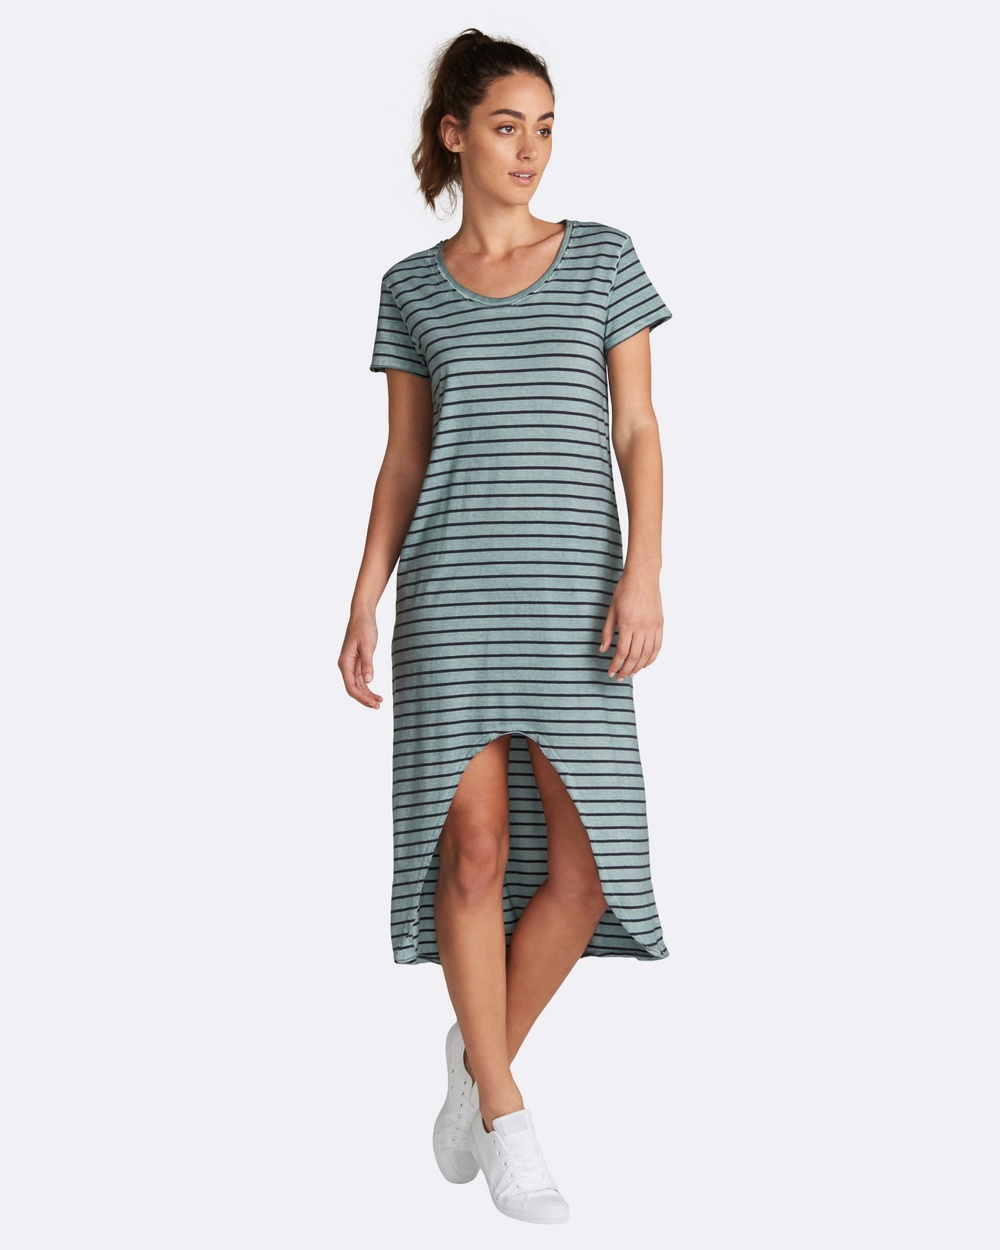 jac + mooki Maisie Stripe Dress Dresses Green Maisie Stripe Dress